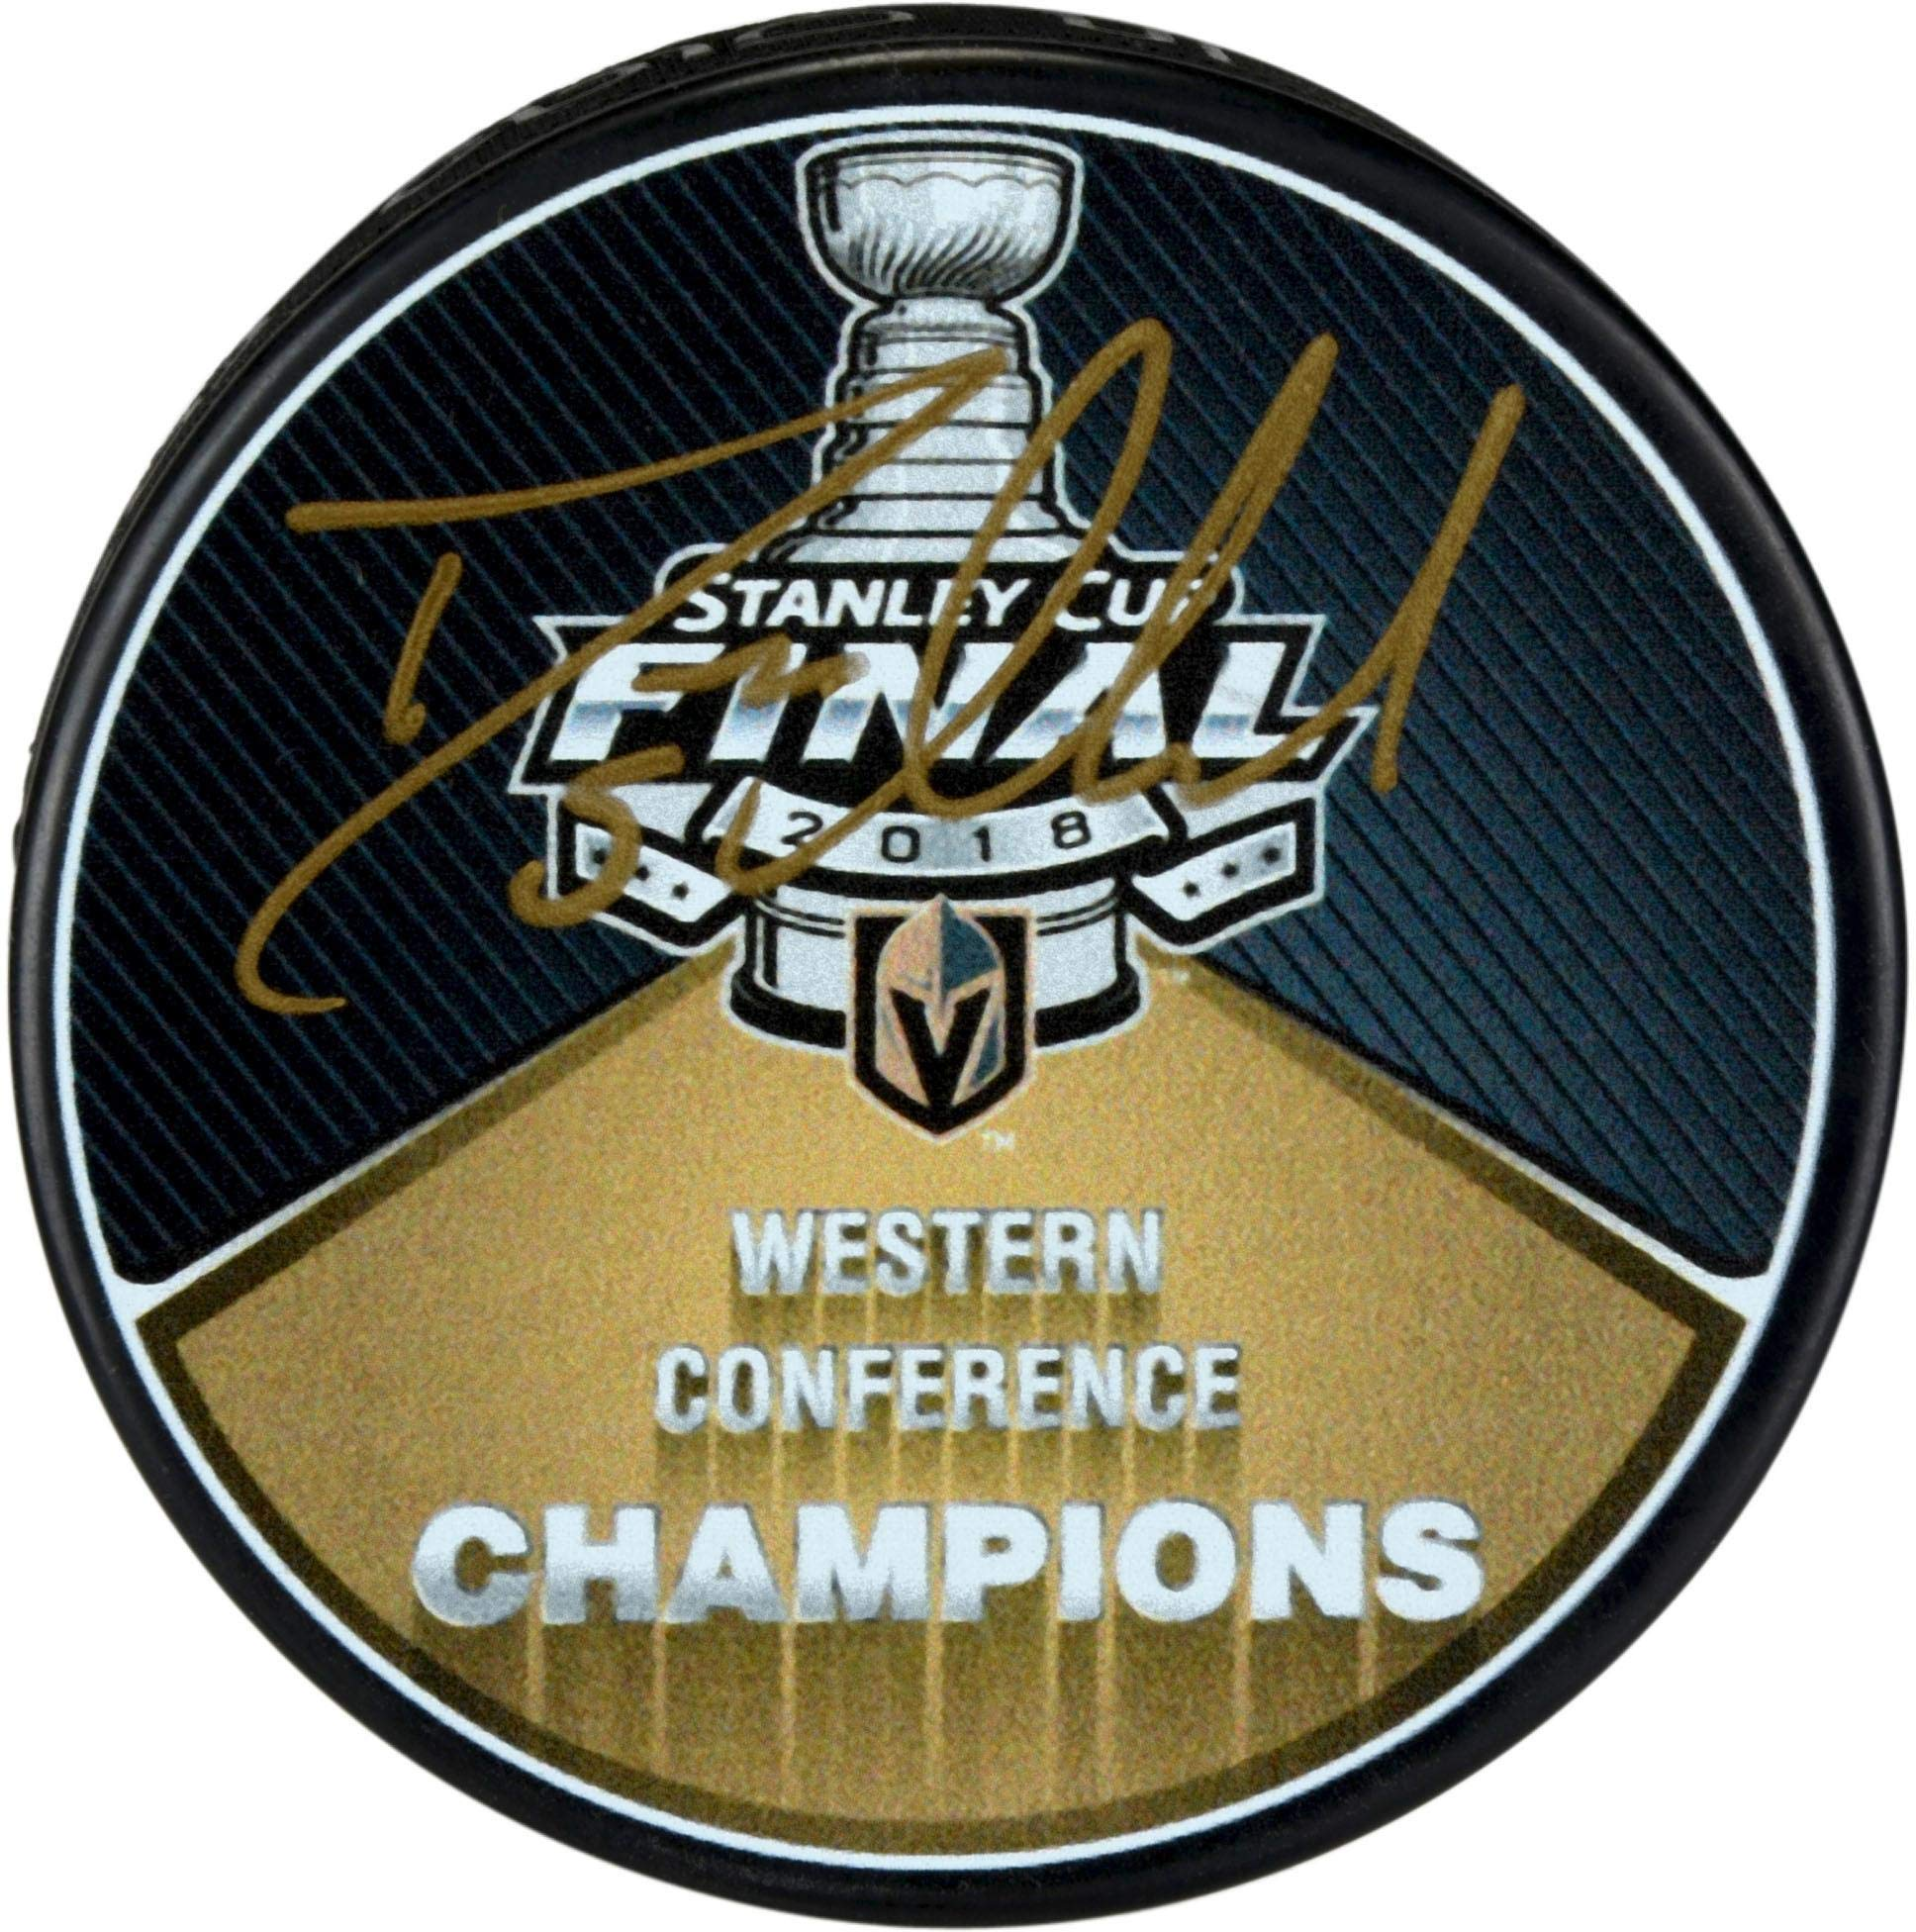 Deryk Engelland Vegas Golden Knights Autographed 2018 Western Conference Champions Puck Fanatics Authentic Certified